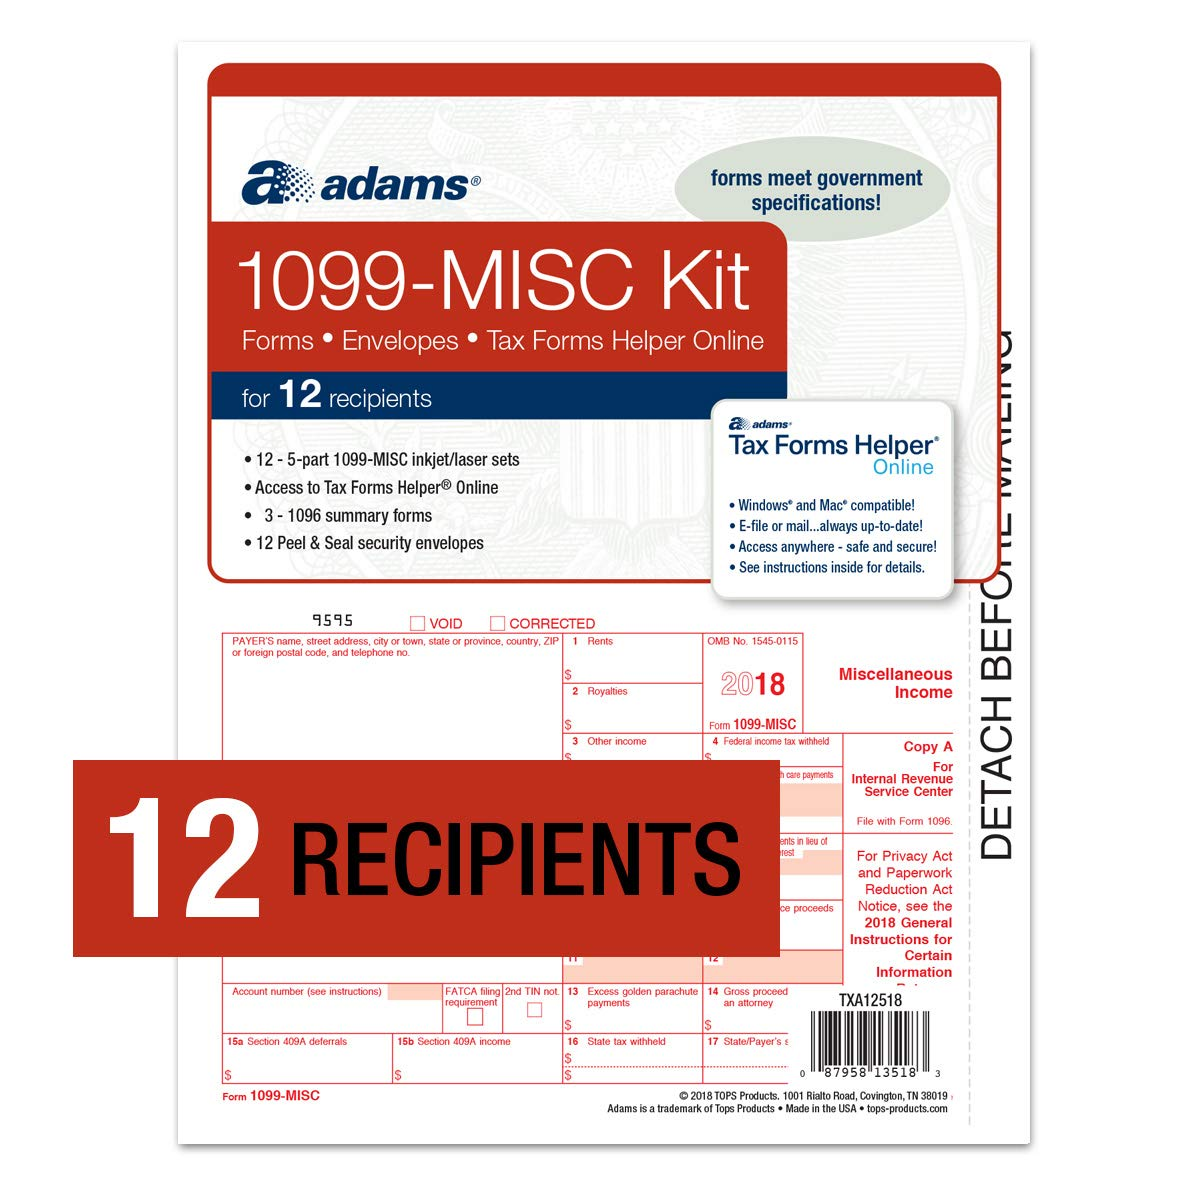 Amazon.com : Adams 1099-MISC Tax Forms for 2018-5-Part Inkjet/Laser Sets  for 12, Three 1096 Summary Forms, 12 envelopes & Access to Adams TFH Online  ...